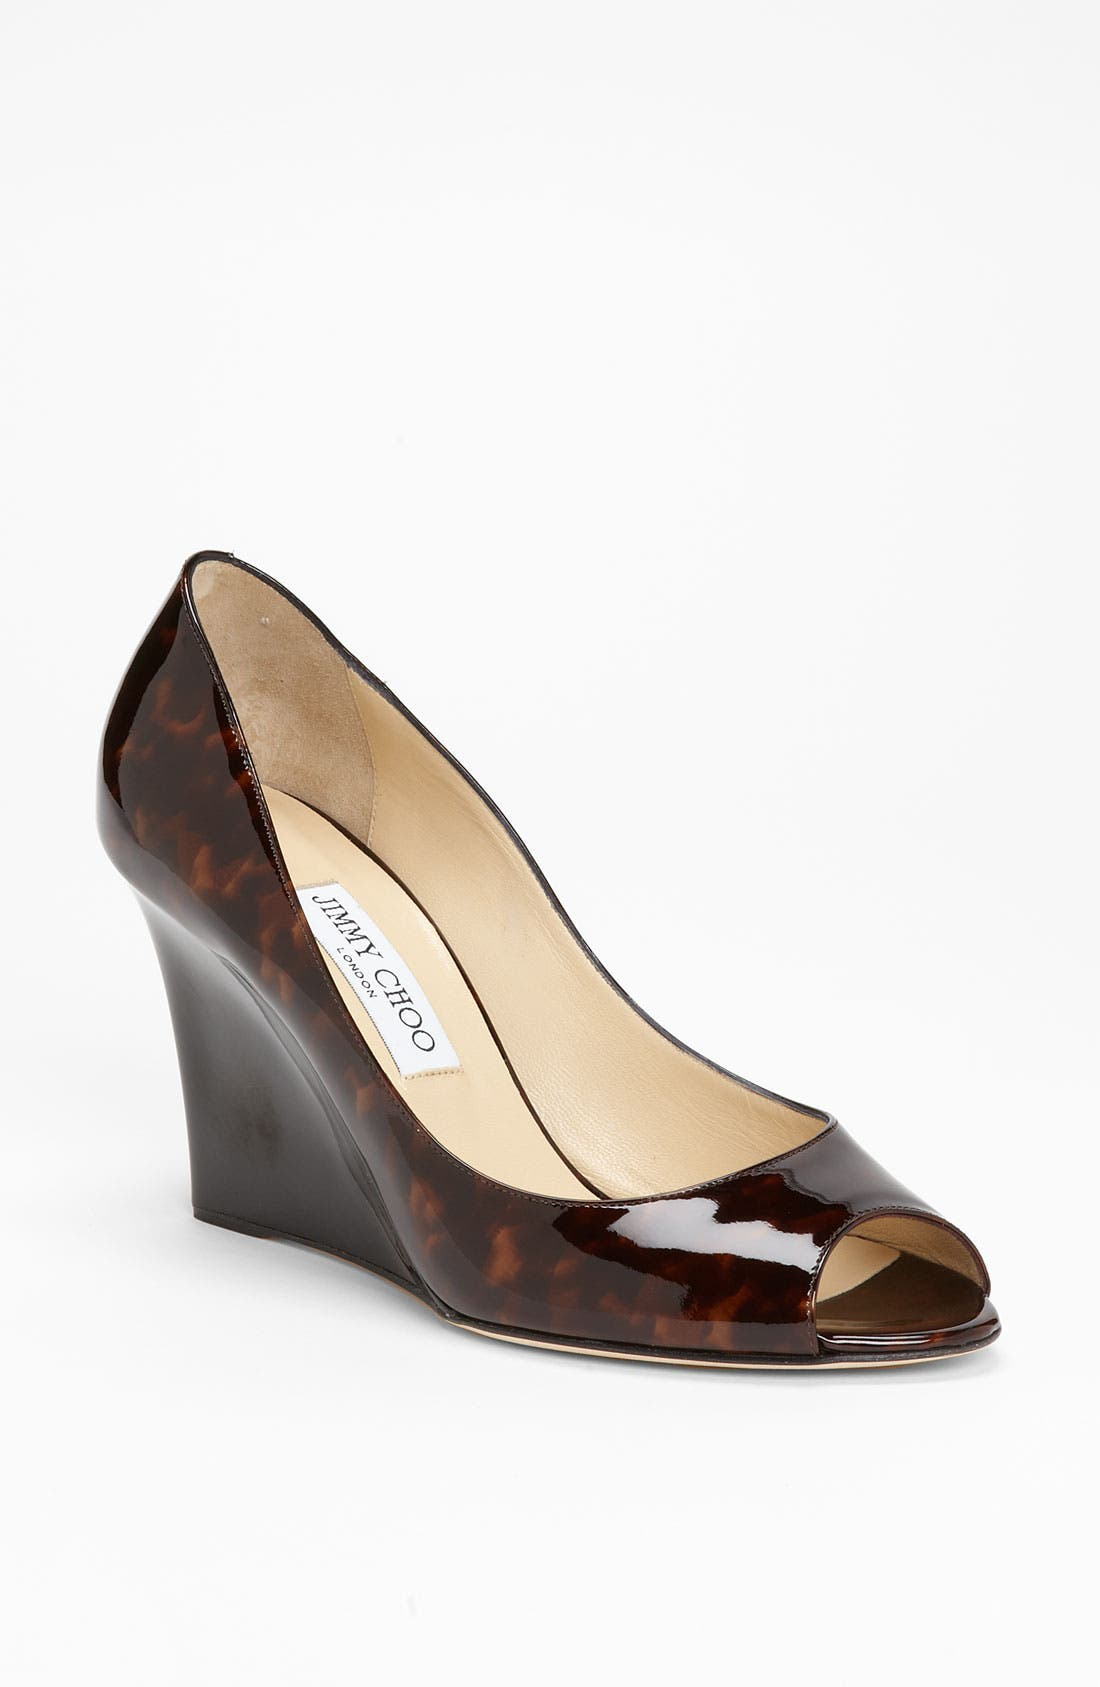 Main Image - Jimmy Choo 'Baxen' Wedge Pump